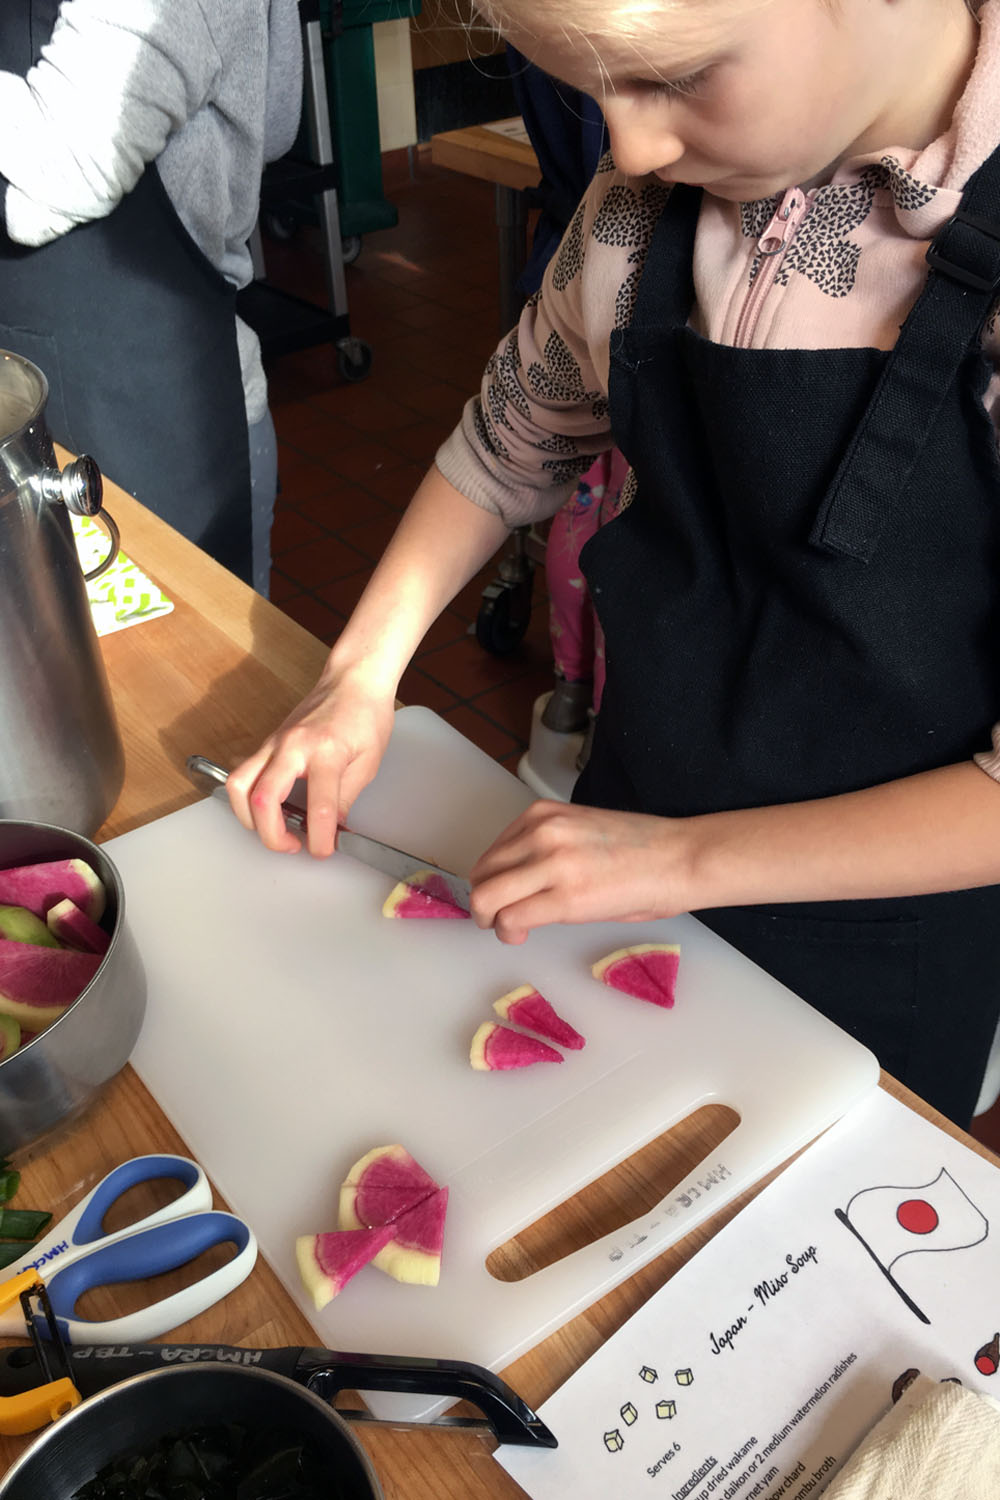 Watermelon radish is local, still in season, and added some whimsy to our soup when cut into wedges.